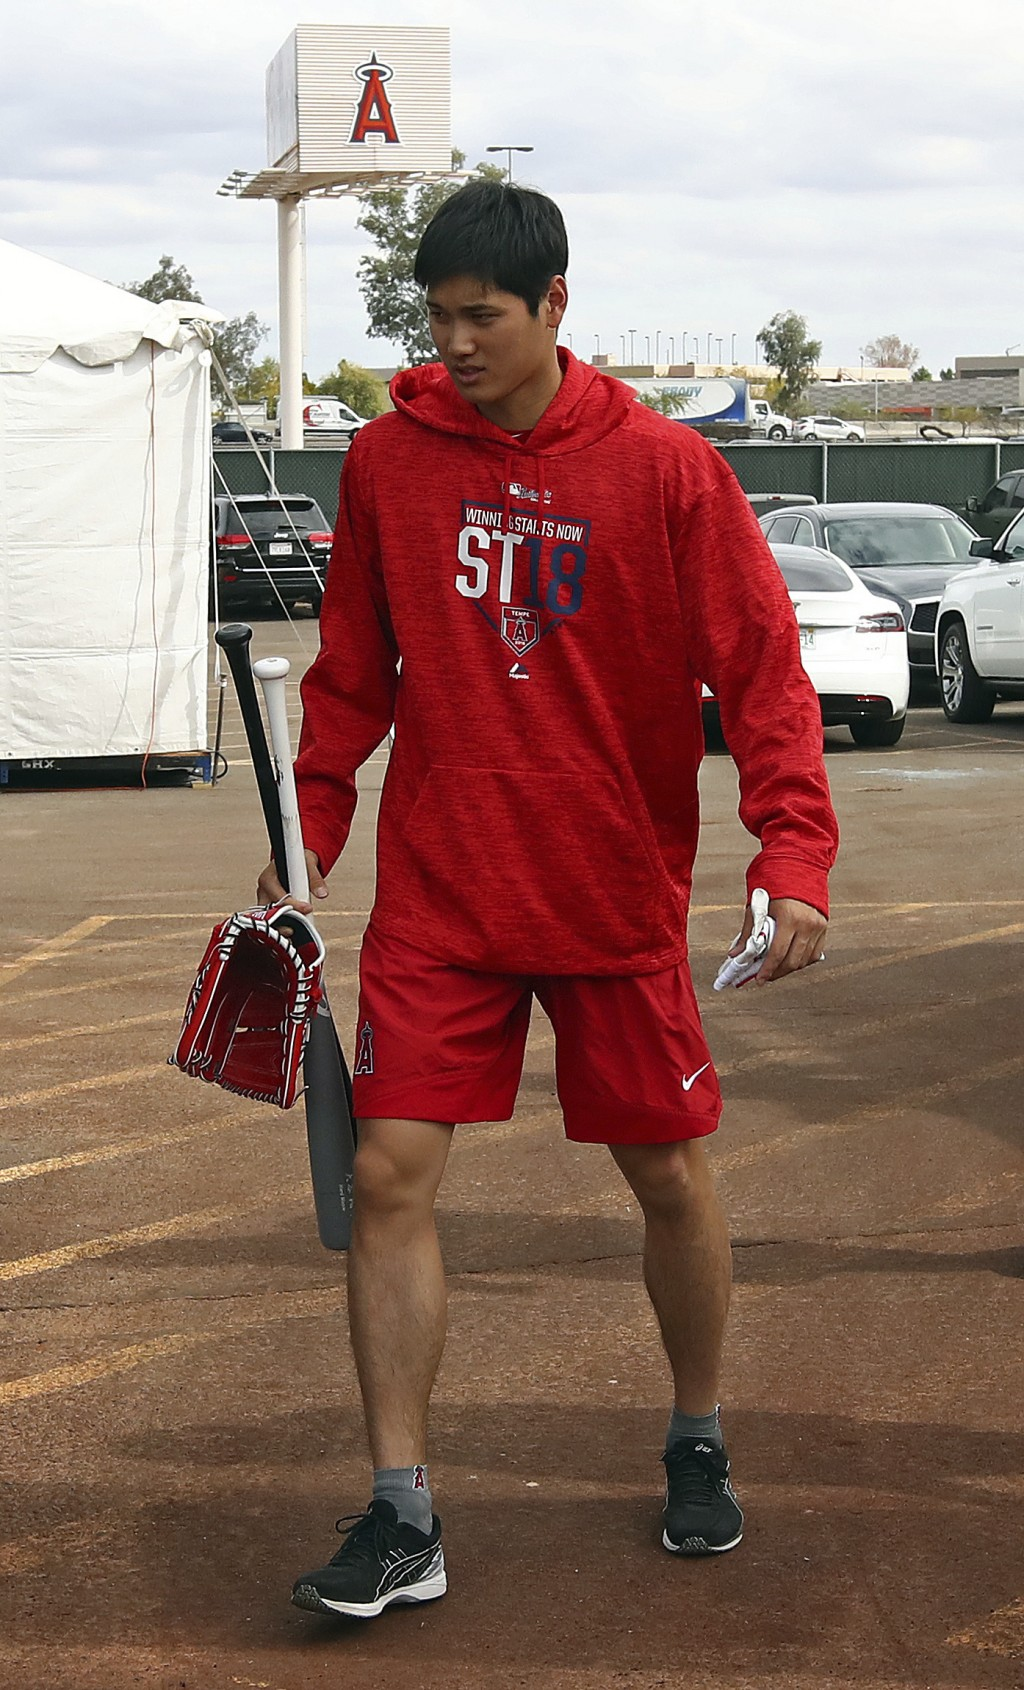 Los Angeles Angels' Shohei Ohtani walks from the batting cage during a spring training baseball practice on Tuesday, Feb. 13, 2018, in Tempe, Ariz. (A